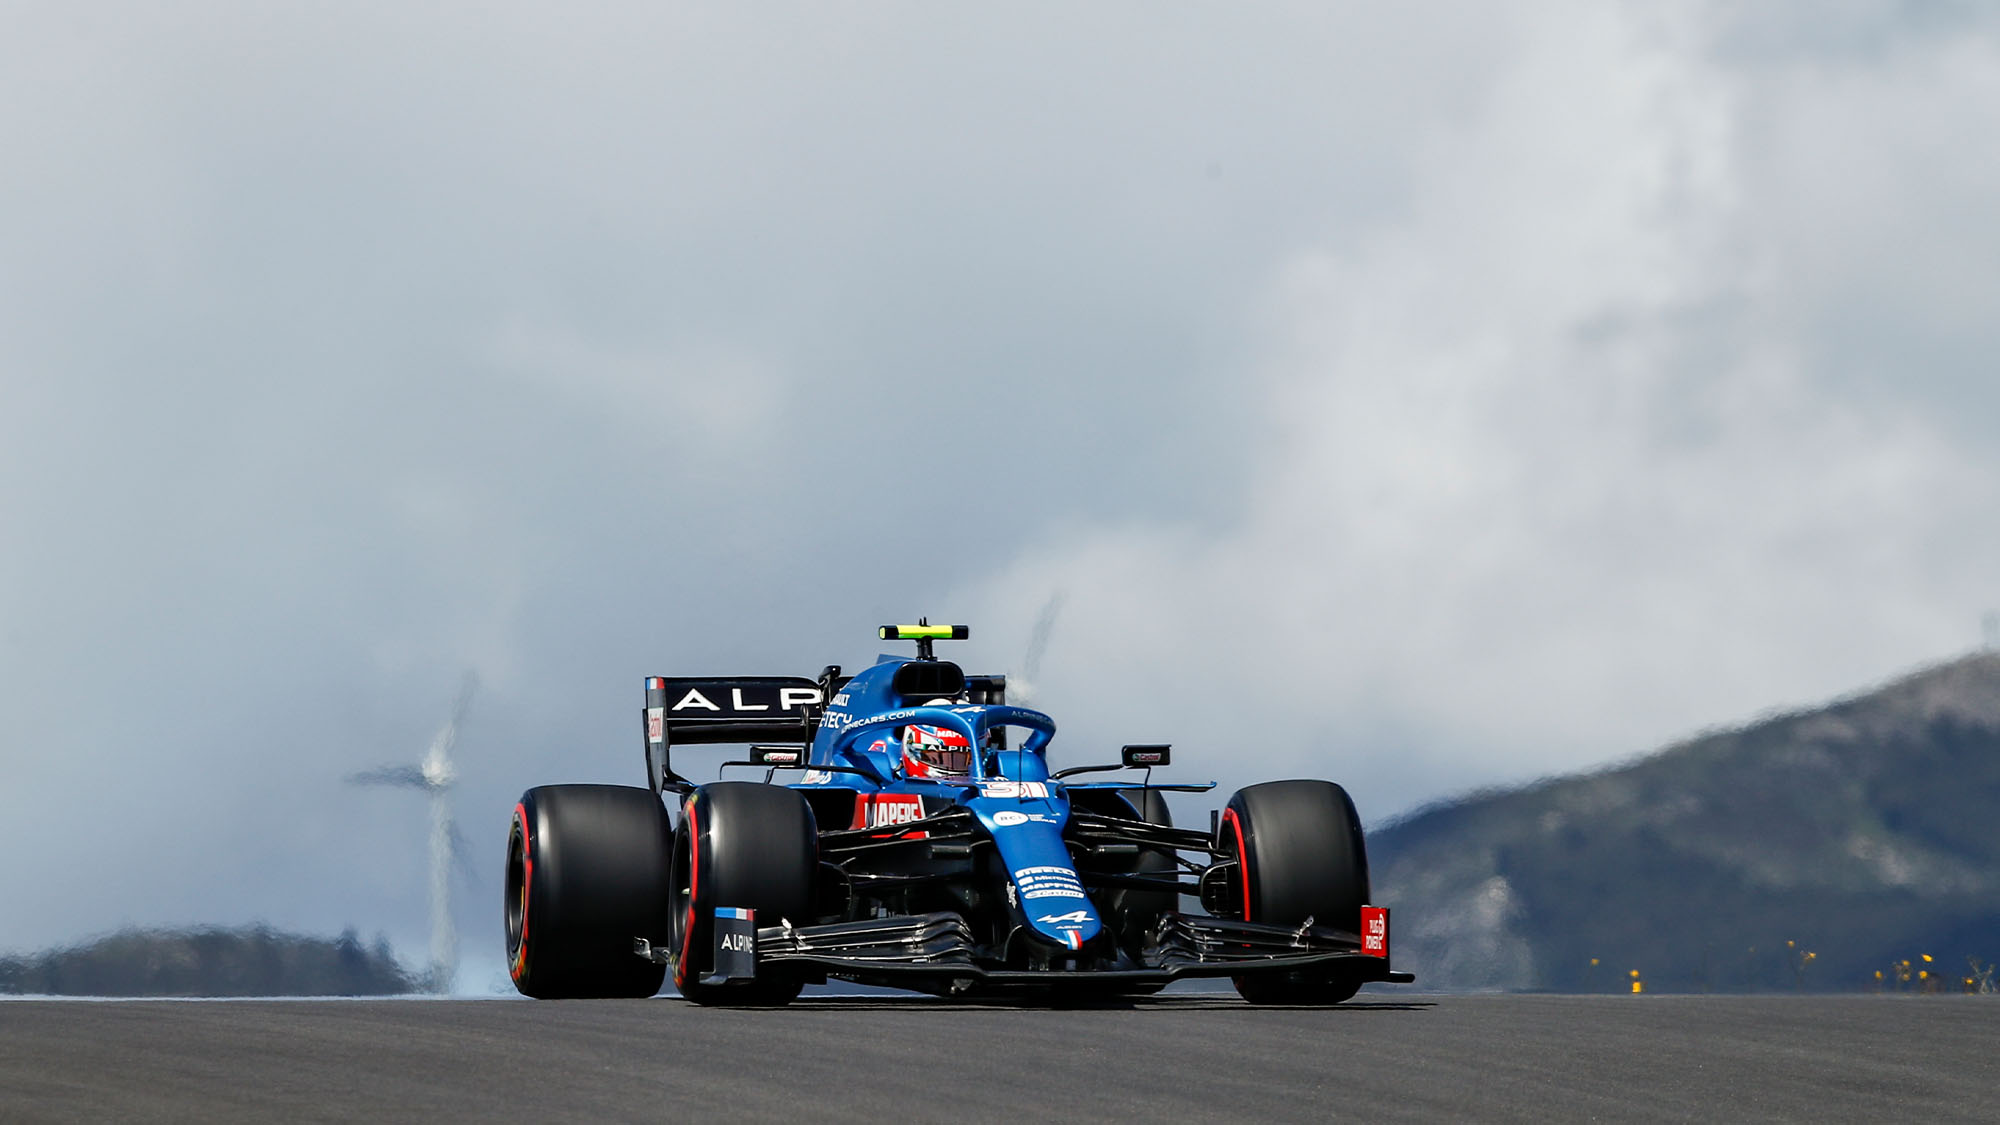 31 OCON Esteban (fra), Alpine F1 A521, action during the Formula 1 Heineken Grande Prémio de Portugal 2021 from April 30 to May 2, 2021 on the Algarve International Circuit, in Portimao, Portugal - Photo DPPI